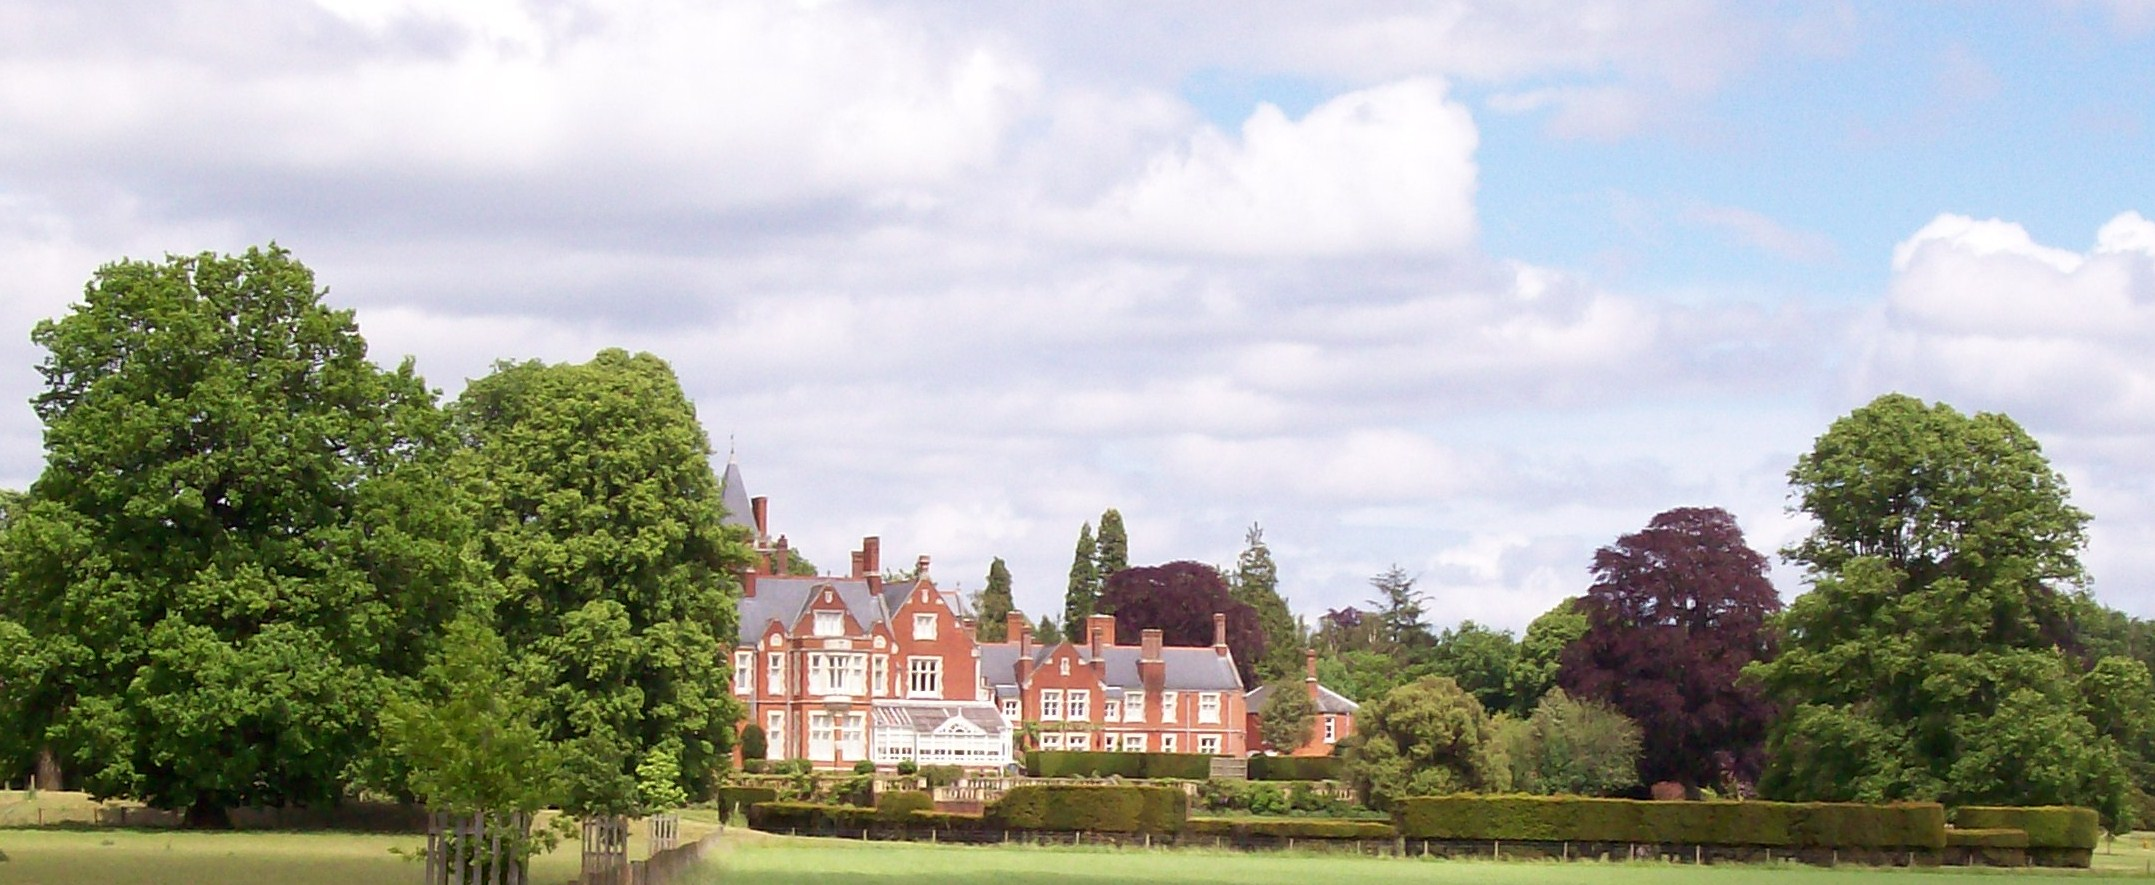 File Bagshot Park House Geograph 3511379 Jpg Wikimedia Commons